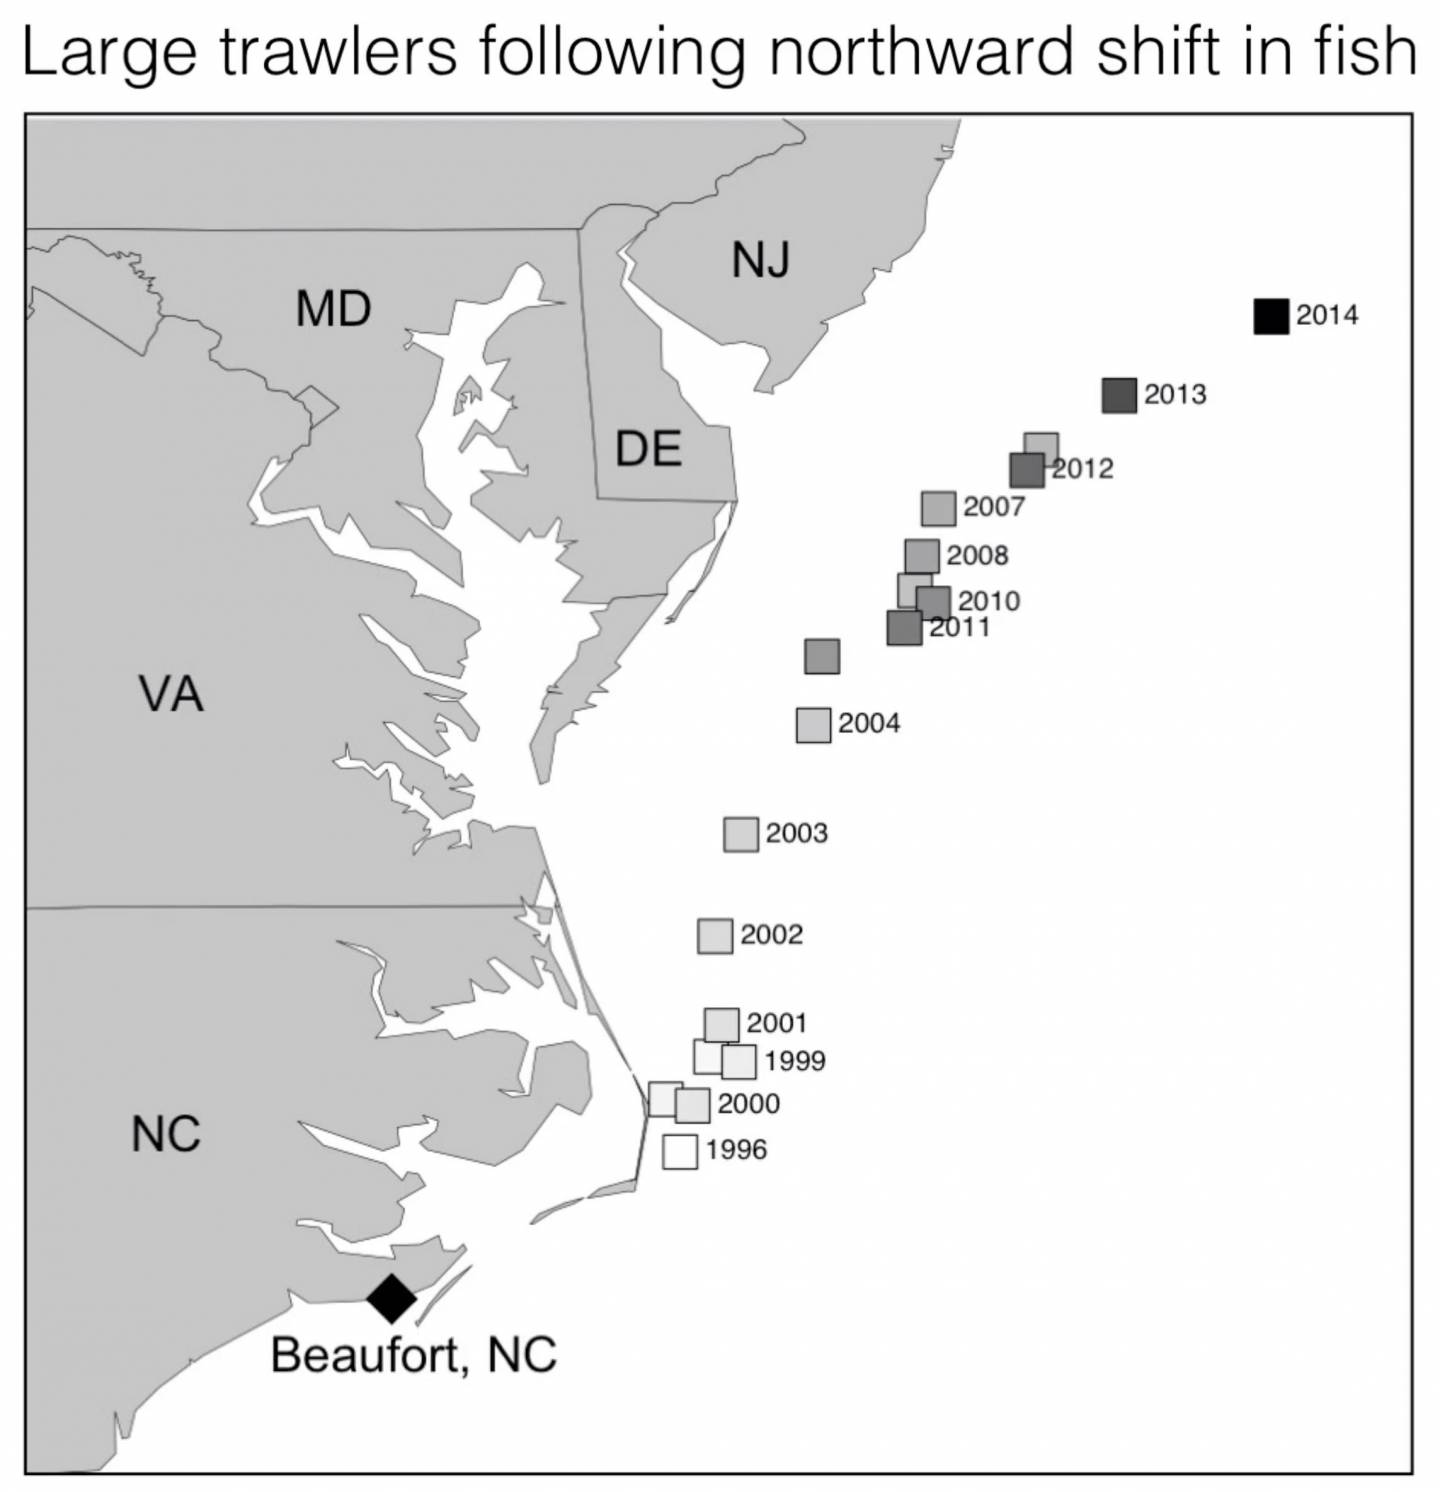 A map of the eastern coast of the United States showing where fishing boats from Beaufort, NC are fishing